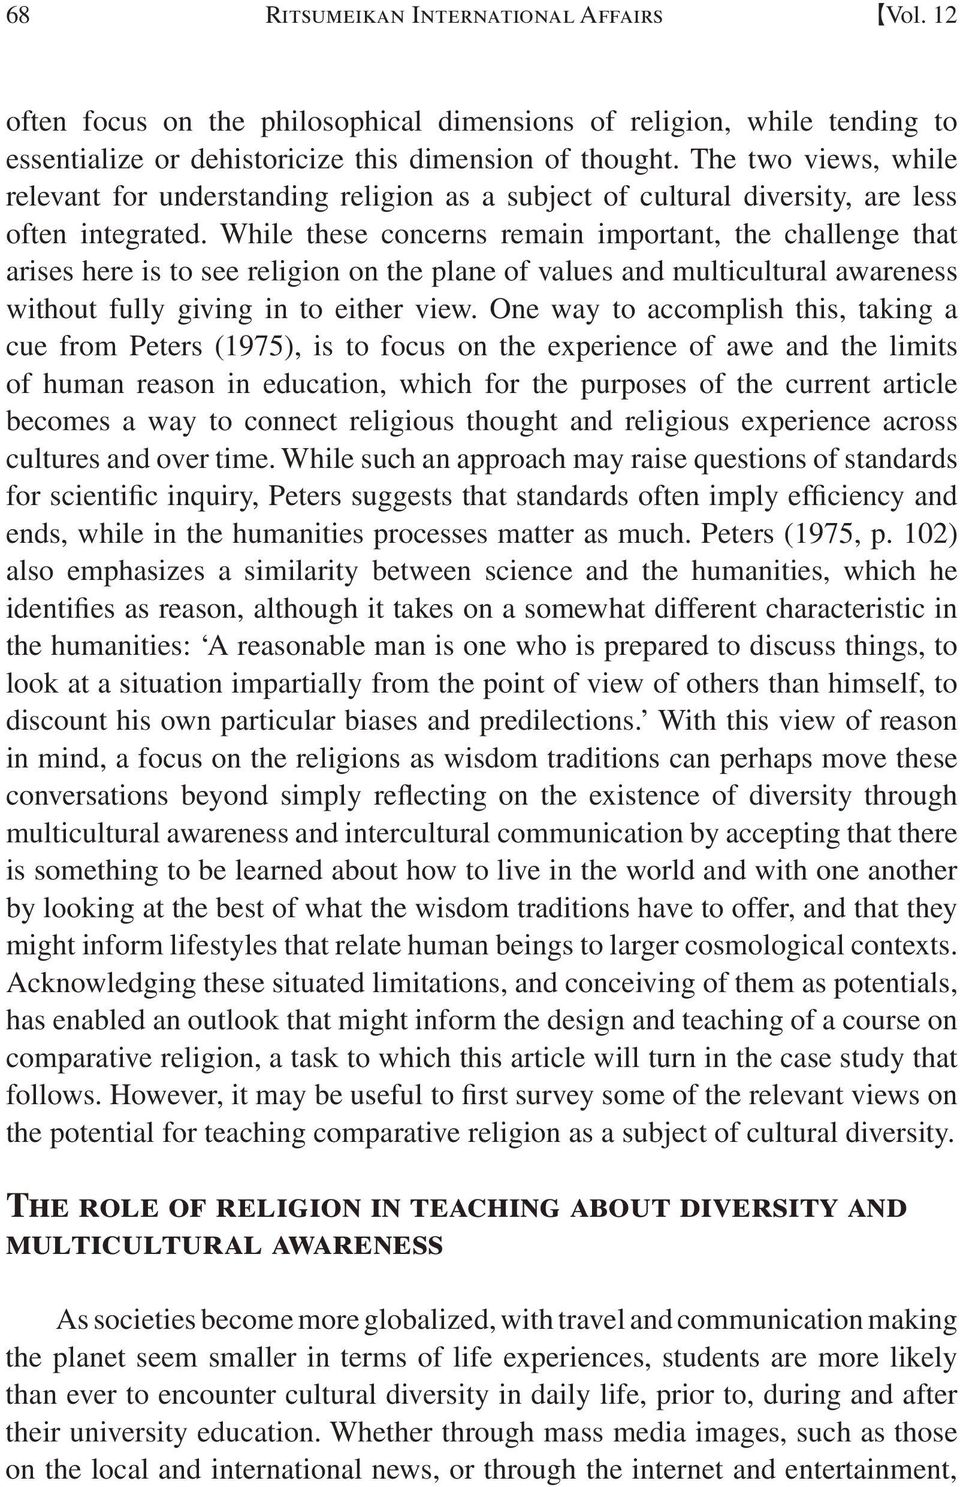 an analysis of cultural diversity in college education Here are 10 reasons why diversity on college campuses is crucial  our nation is  changing, and our higher education institutions need to reflect this diversity  a  study conducted by the university of california, los angeles,.